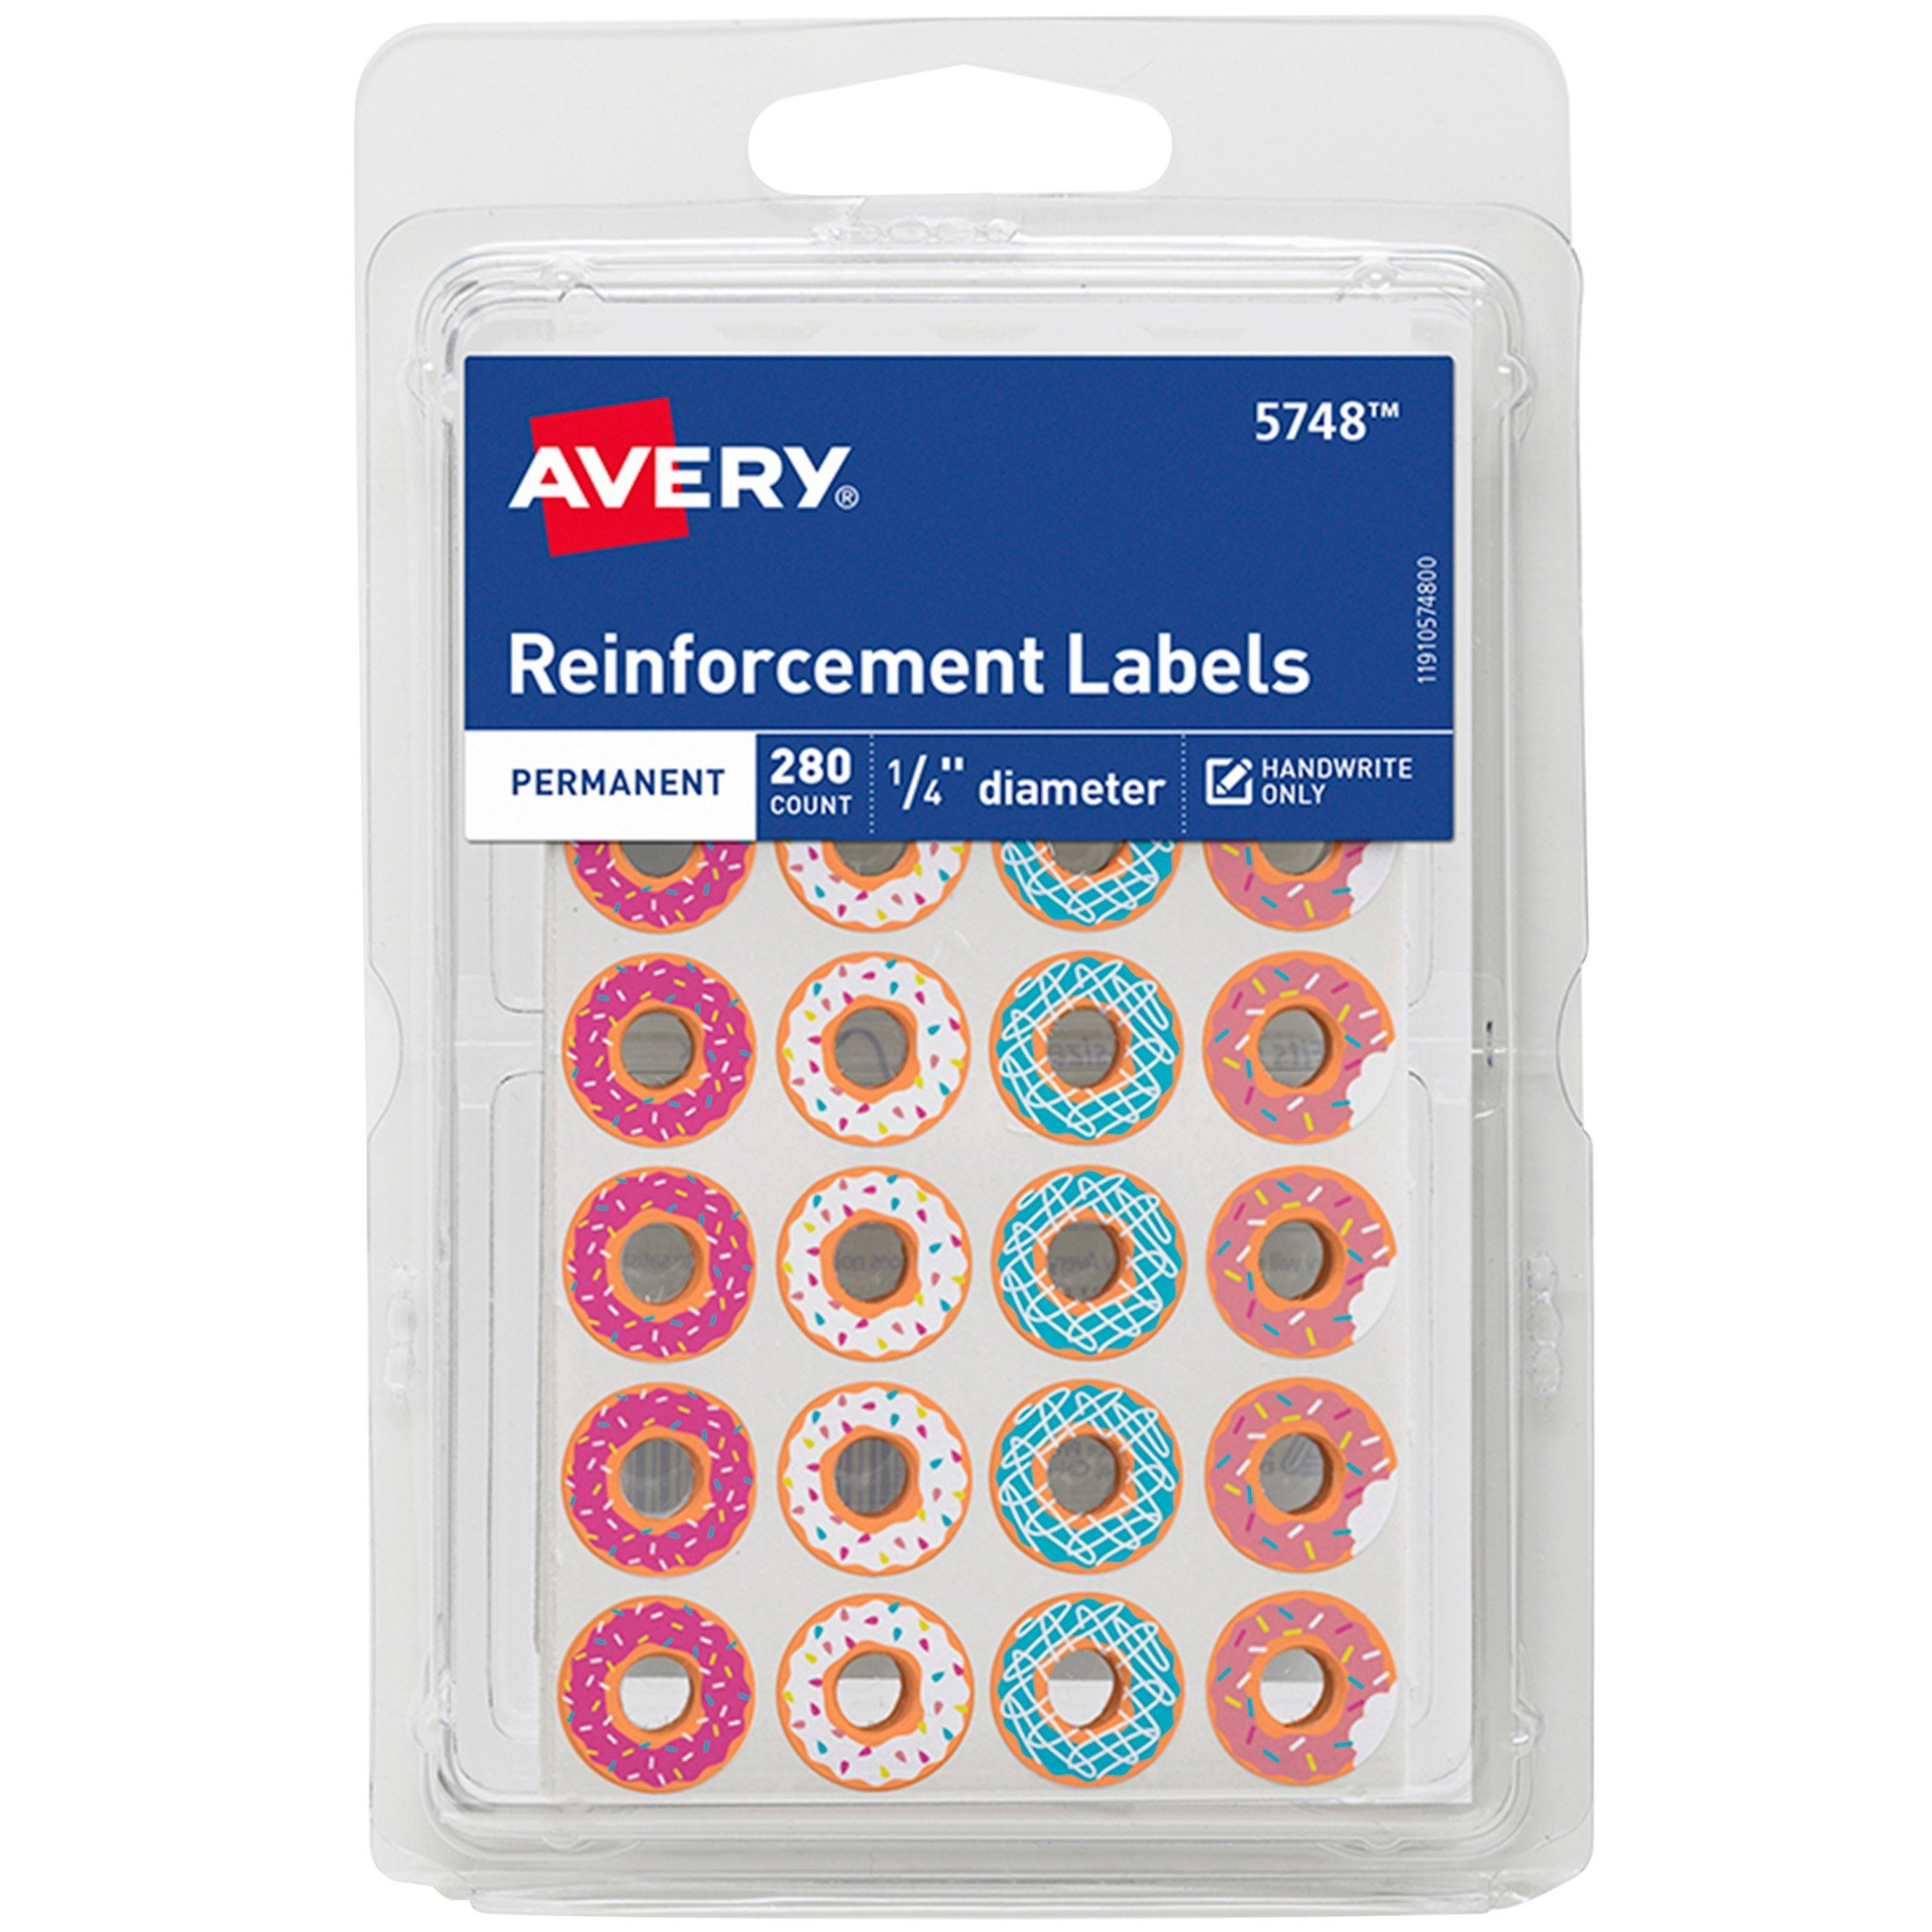 Avery Fashion Reinforcement Labels, Assorted Donut Designs, 1/4'' Diameter, Pack of 280 (5748)